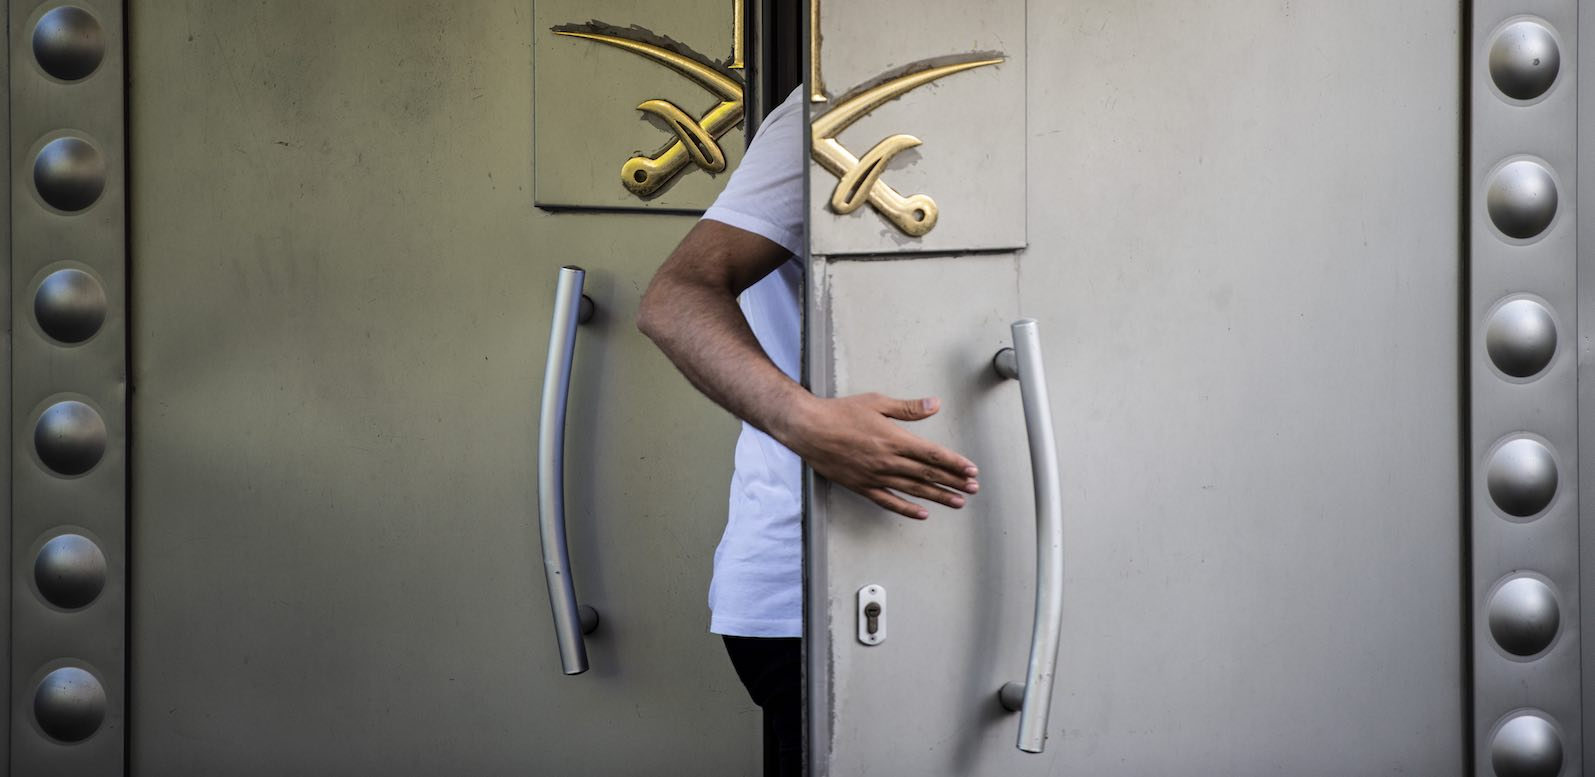 A Saudi official enters the door of the Saudi consulate in Istanbul, the last known location of journalist Jamal Khashoggi (Photo: Yasin Akgul via Getty)